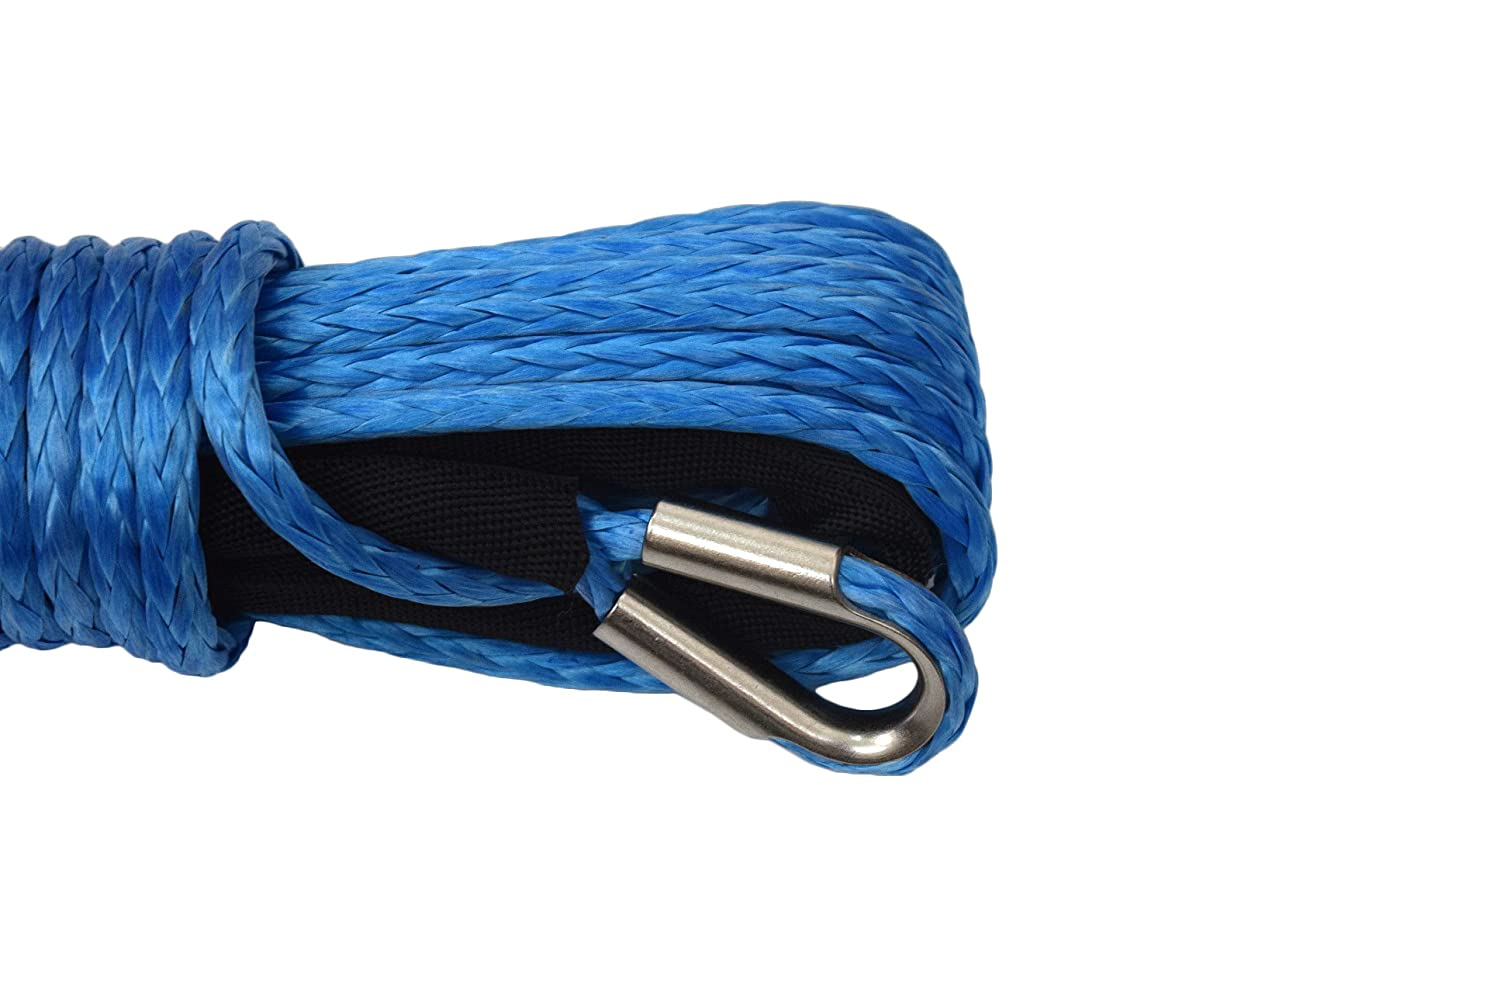 5//16 /×50ft Synthetic Winch Rope,4x4 ATV Winch Cable,UHMWPE Winch Rope for Offroad Parts Blue